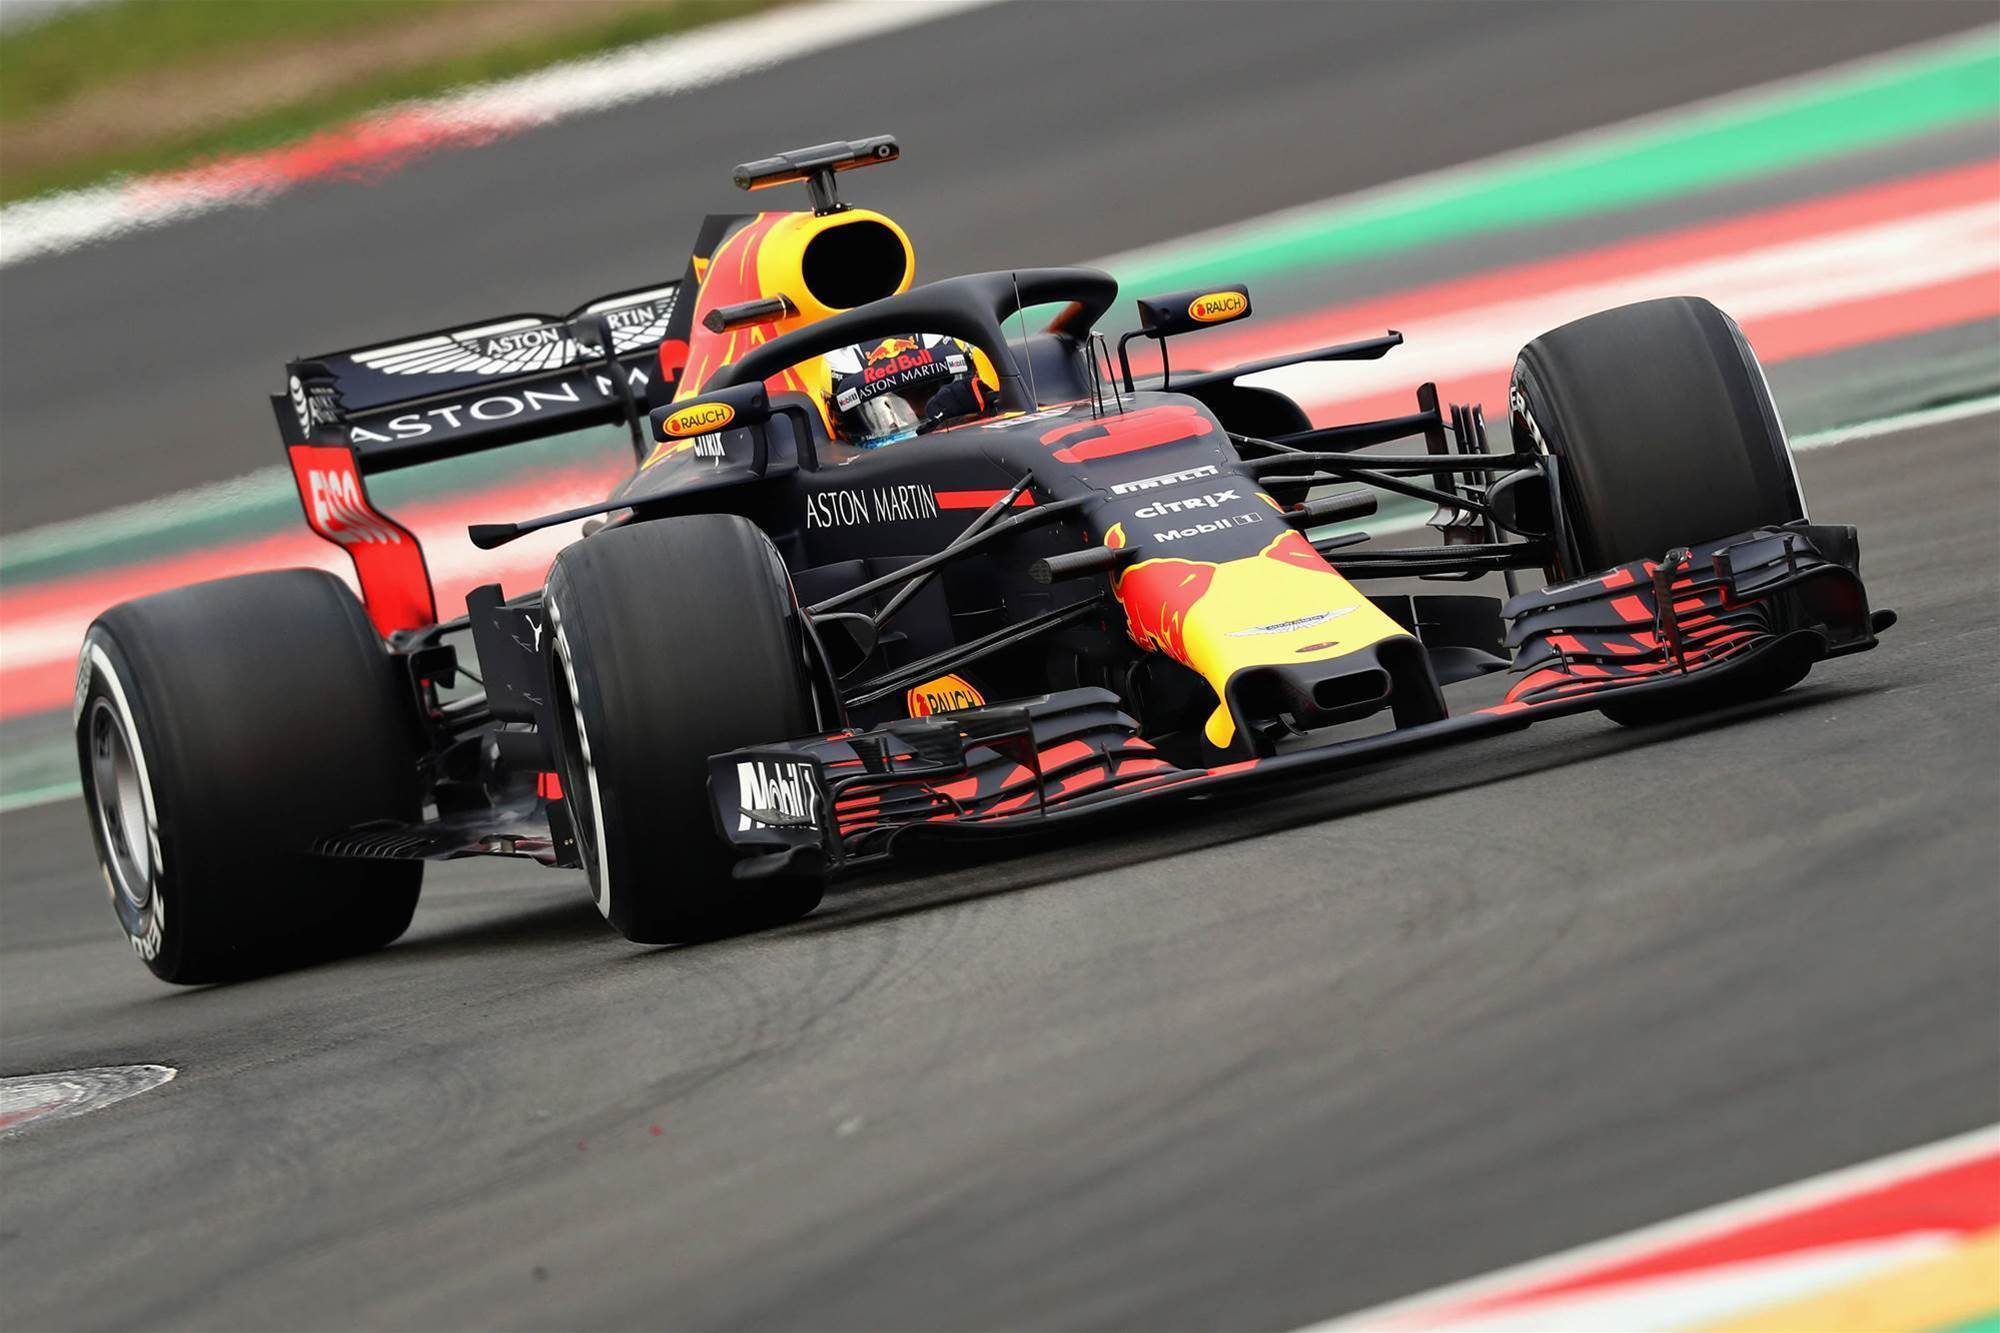 Ricciardo tops times on opening practice day